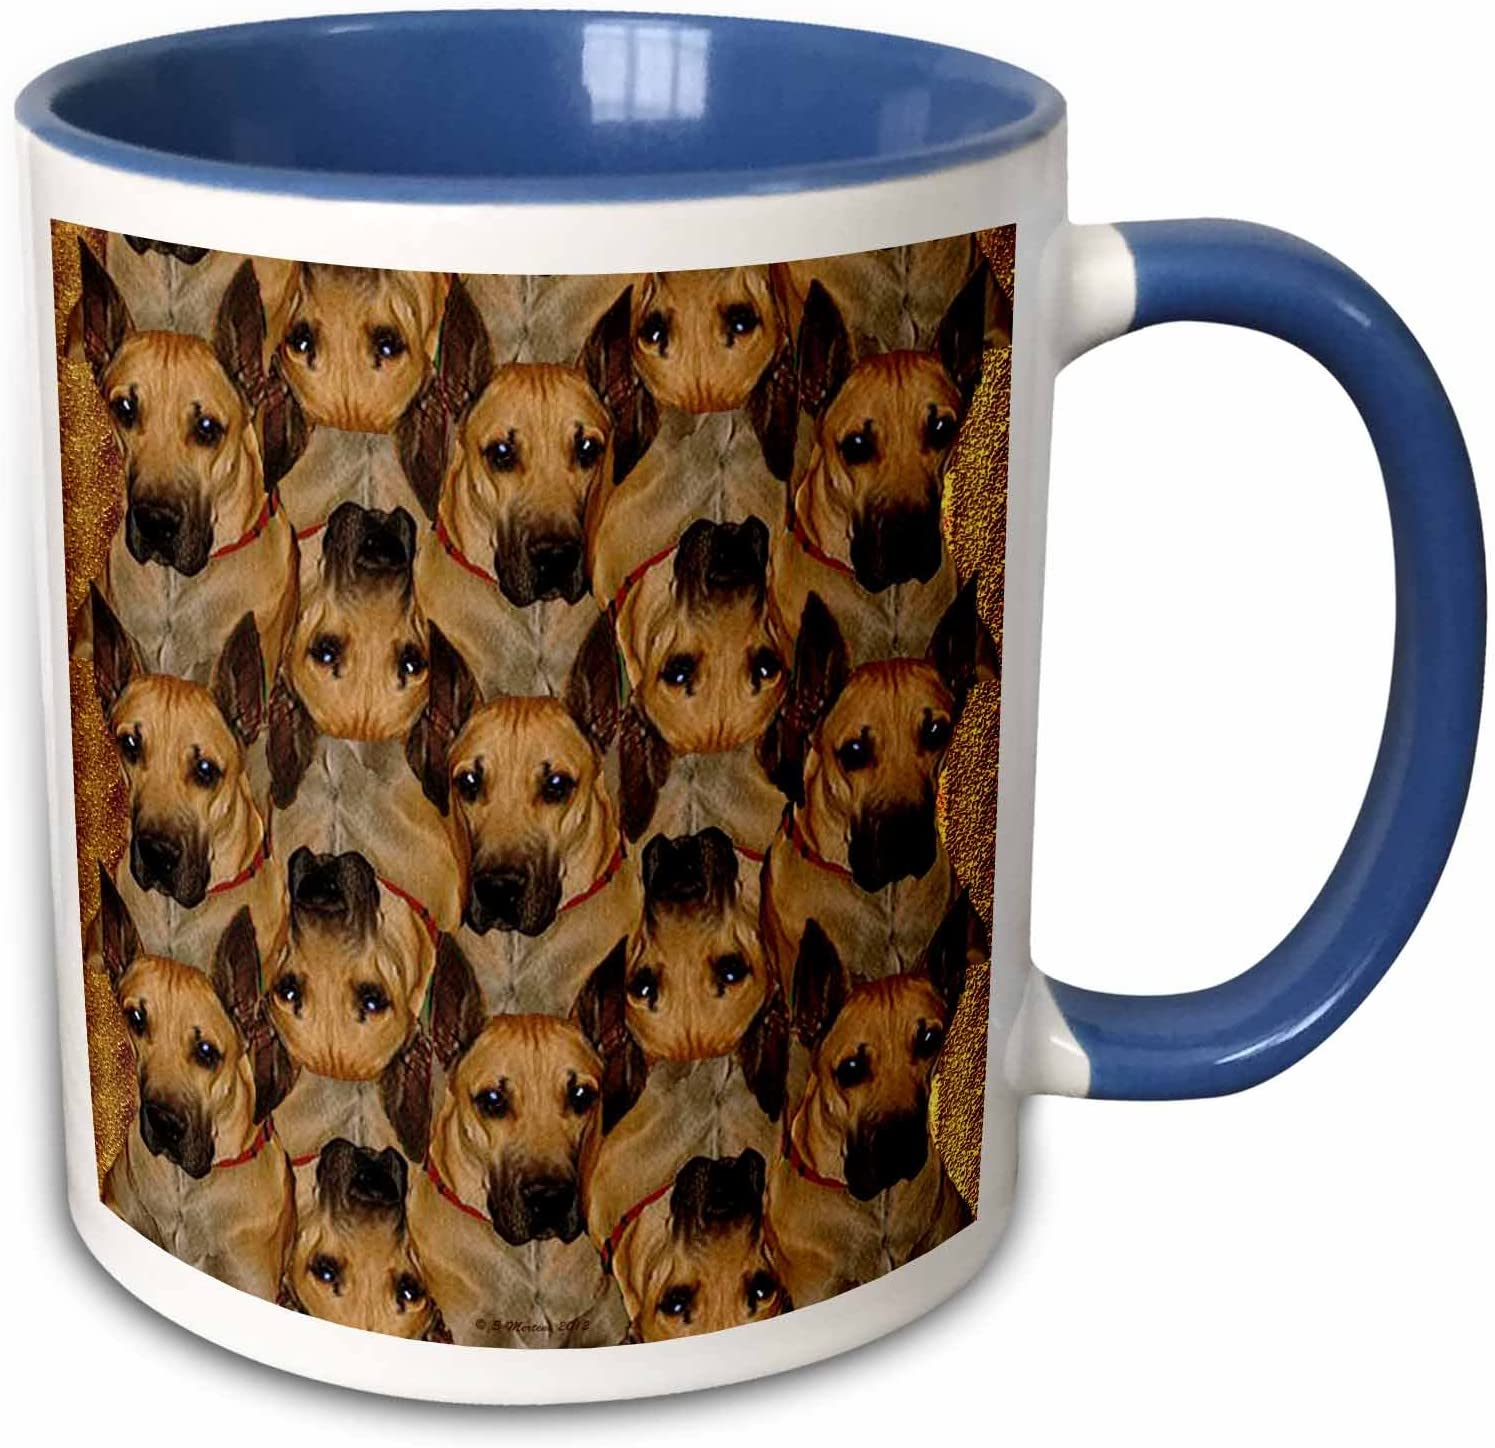 3drose Sandy Mertens Funky Designs Great Dane Tessellation 11oz Two Tone Blue Mug Mug 48749 6 Amazon Ca Home Kitchen